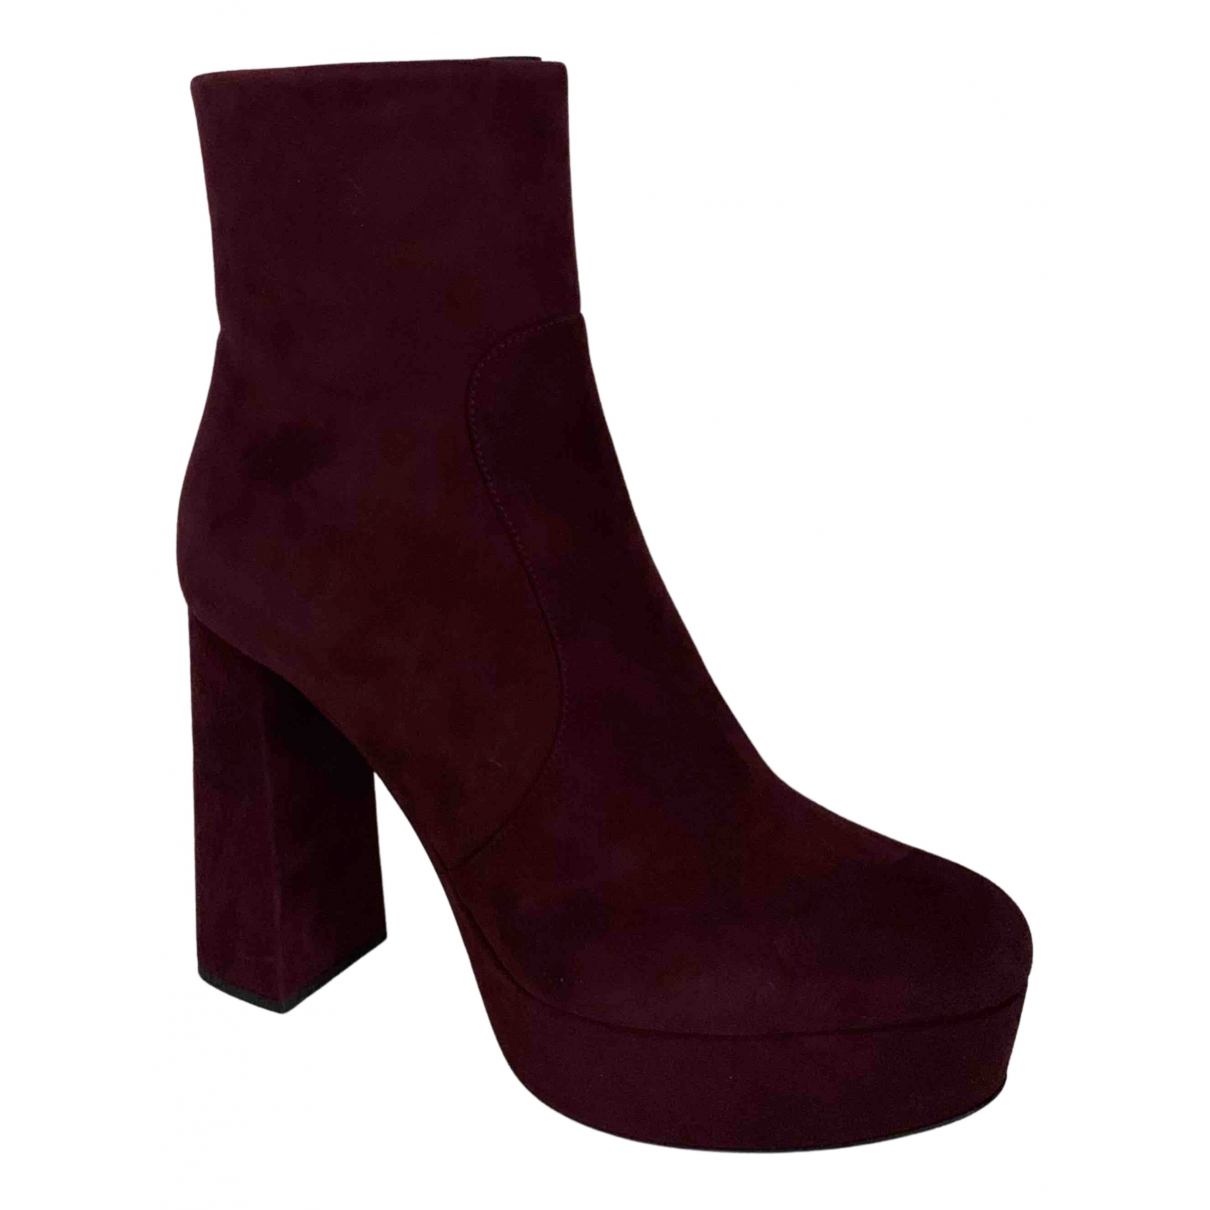 Prada N Burgundy Suede Ankle boots for Women 40 IT